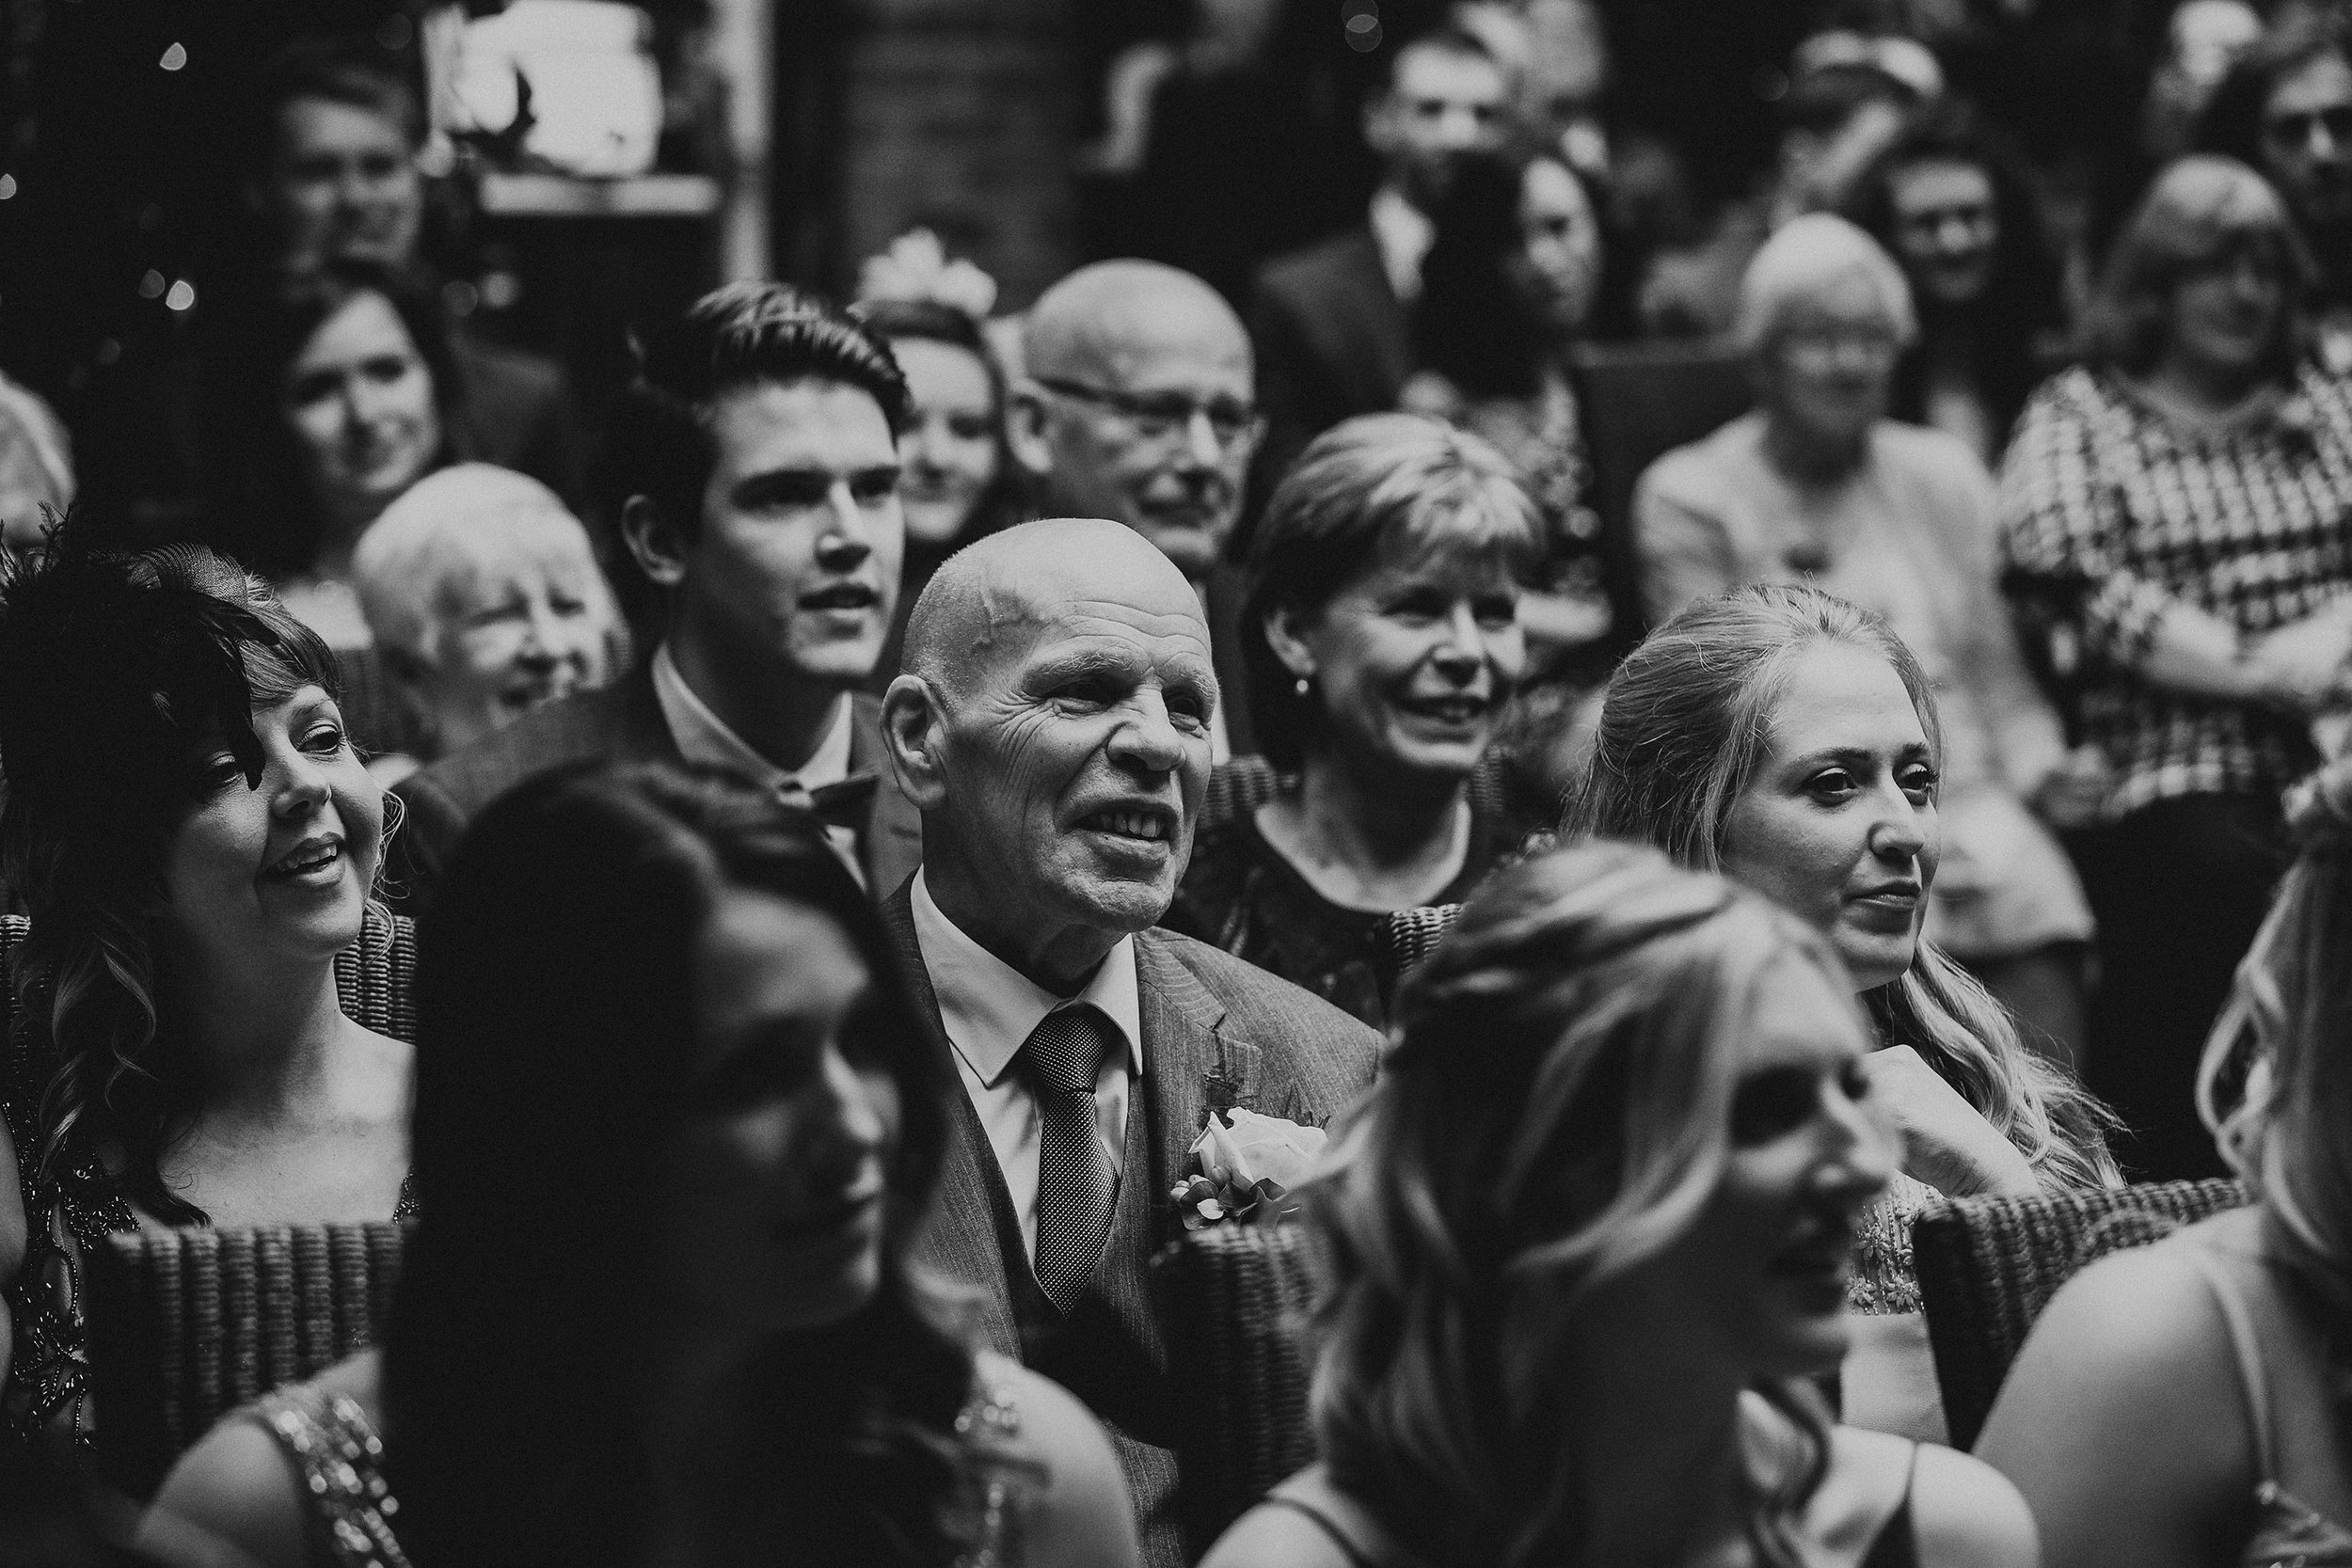 UBIQUITOUS_CHIP_WEDDING_PHOTOGRAPHY_CARA_FRASER_PJ_PHILLIPS_PHOTOGRAPHY_75.jpg